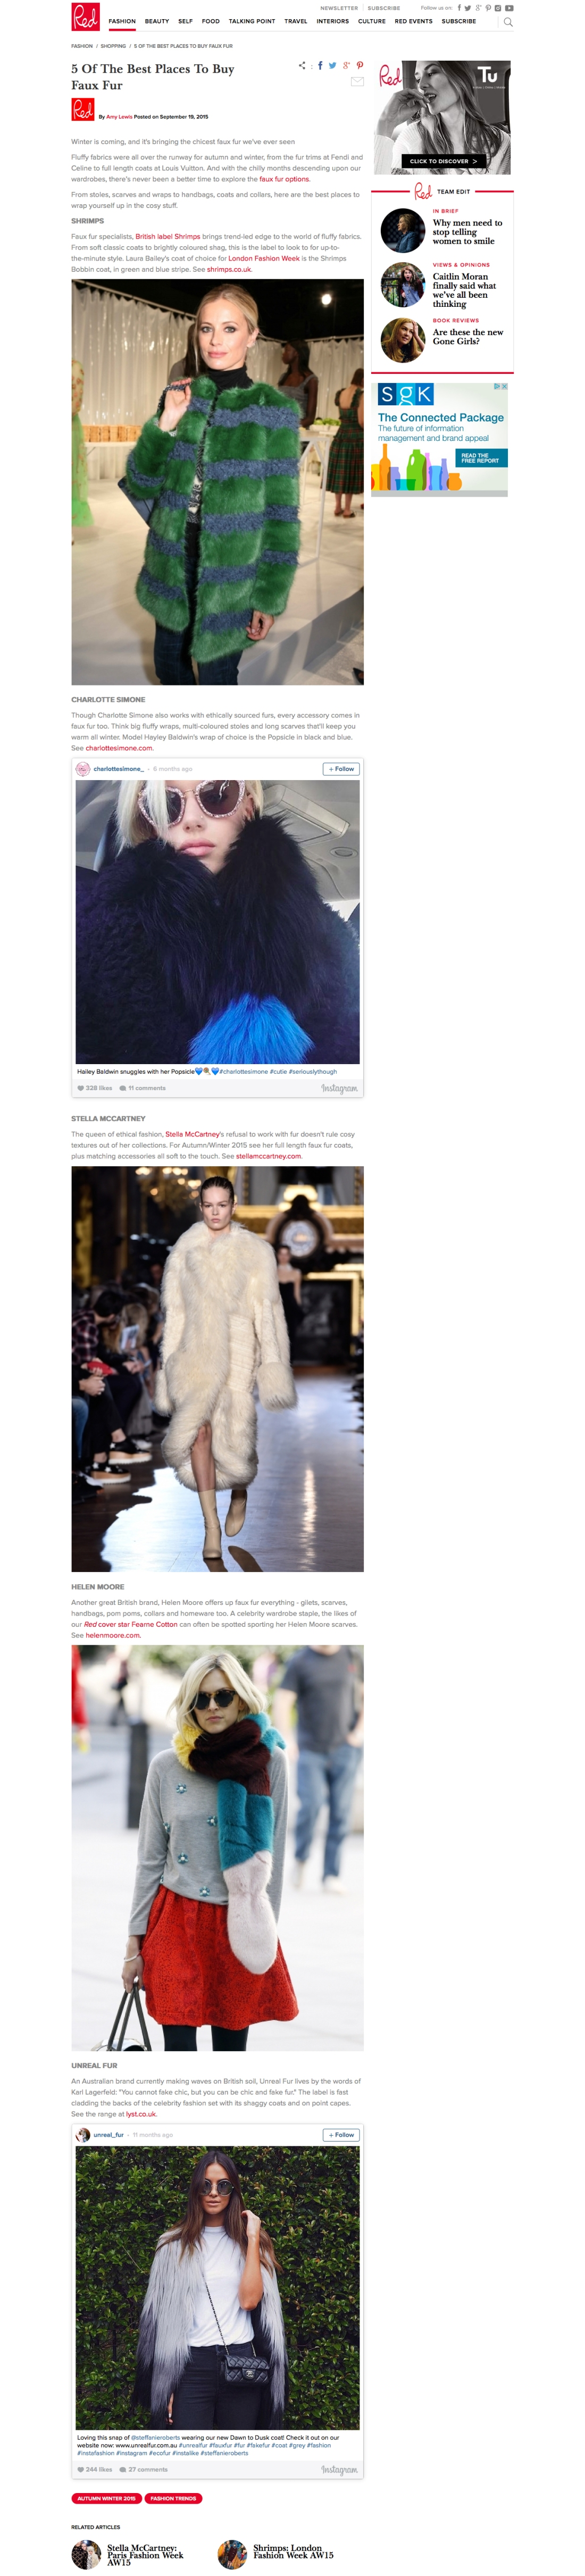 5_of_the_best_places_to_buy_faux_fur_-_Red_Online_-_2016-03-24_09.56.15 copy